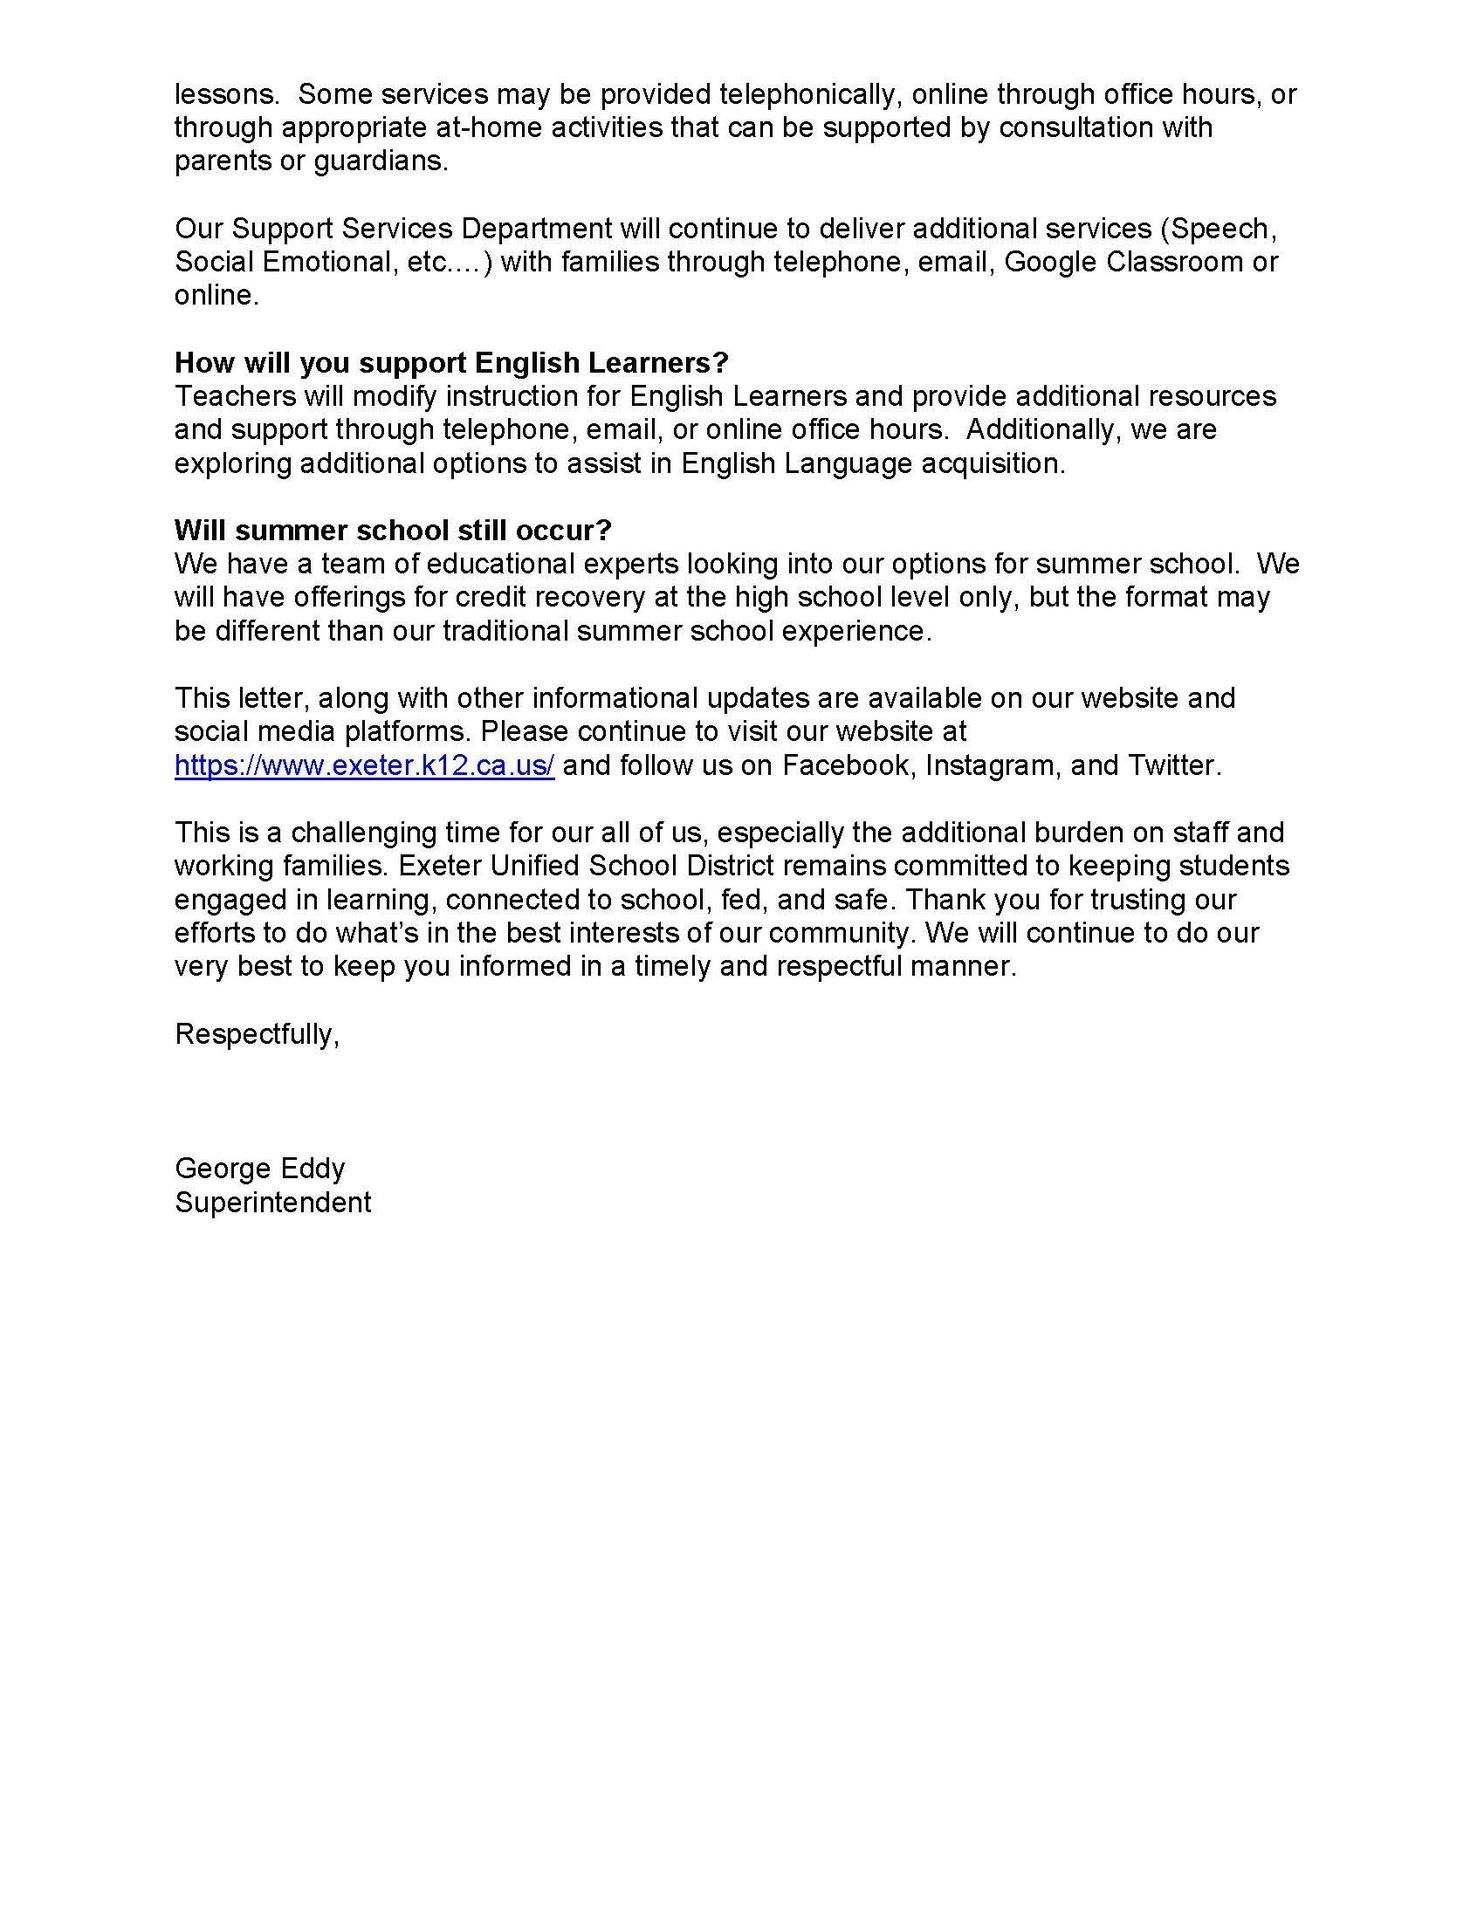 EUSD Superintendent's Community Letter- English page 3